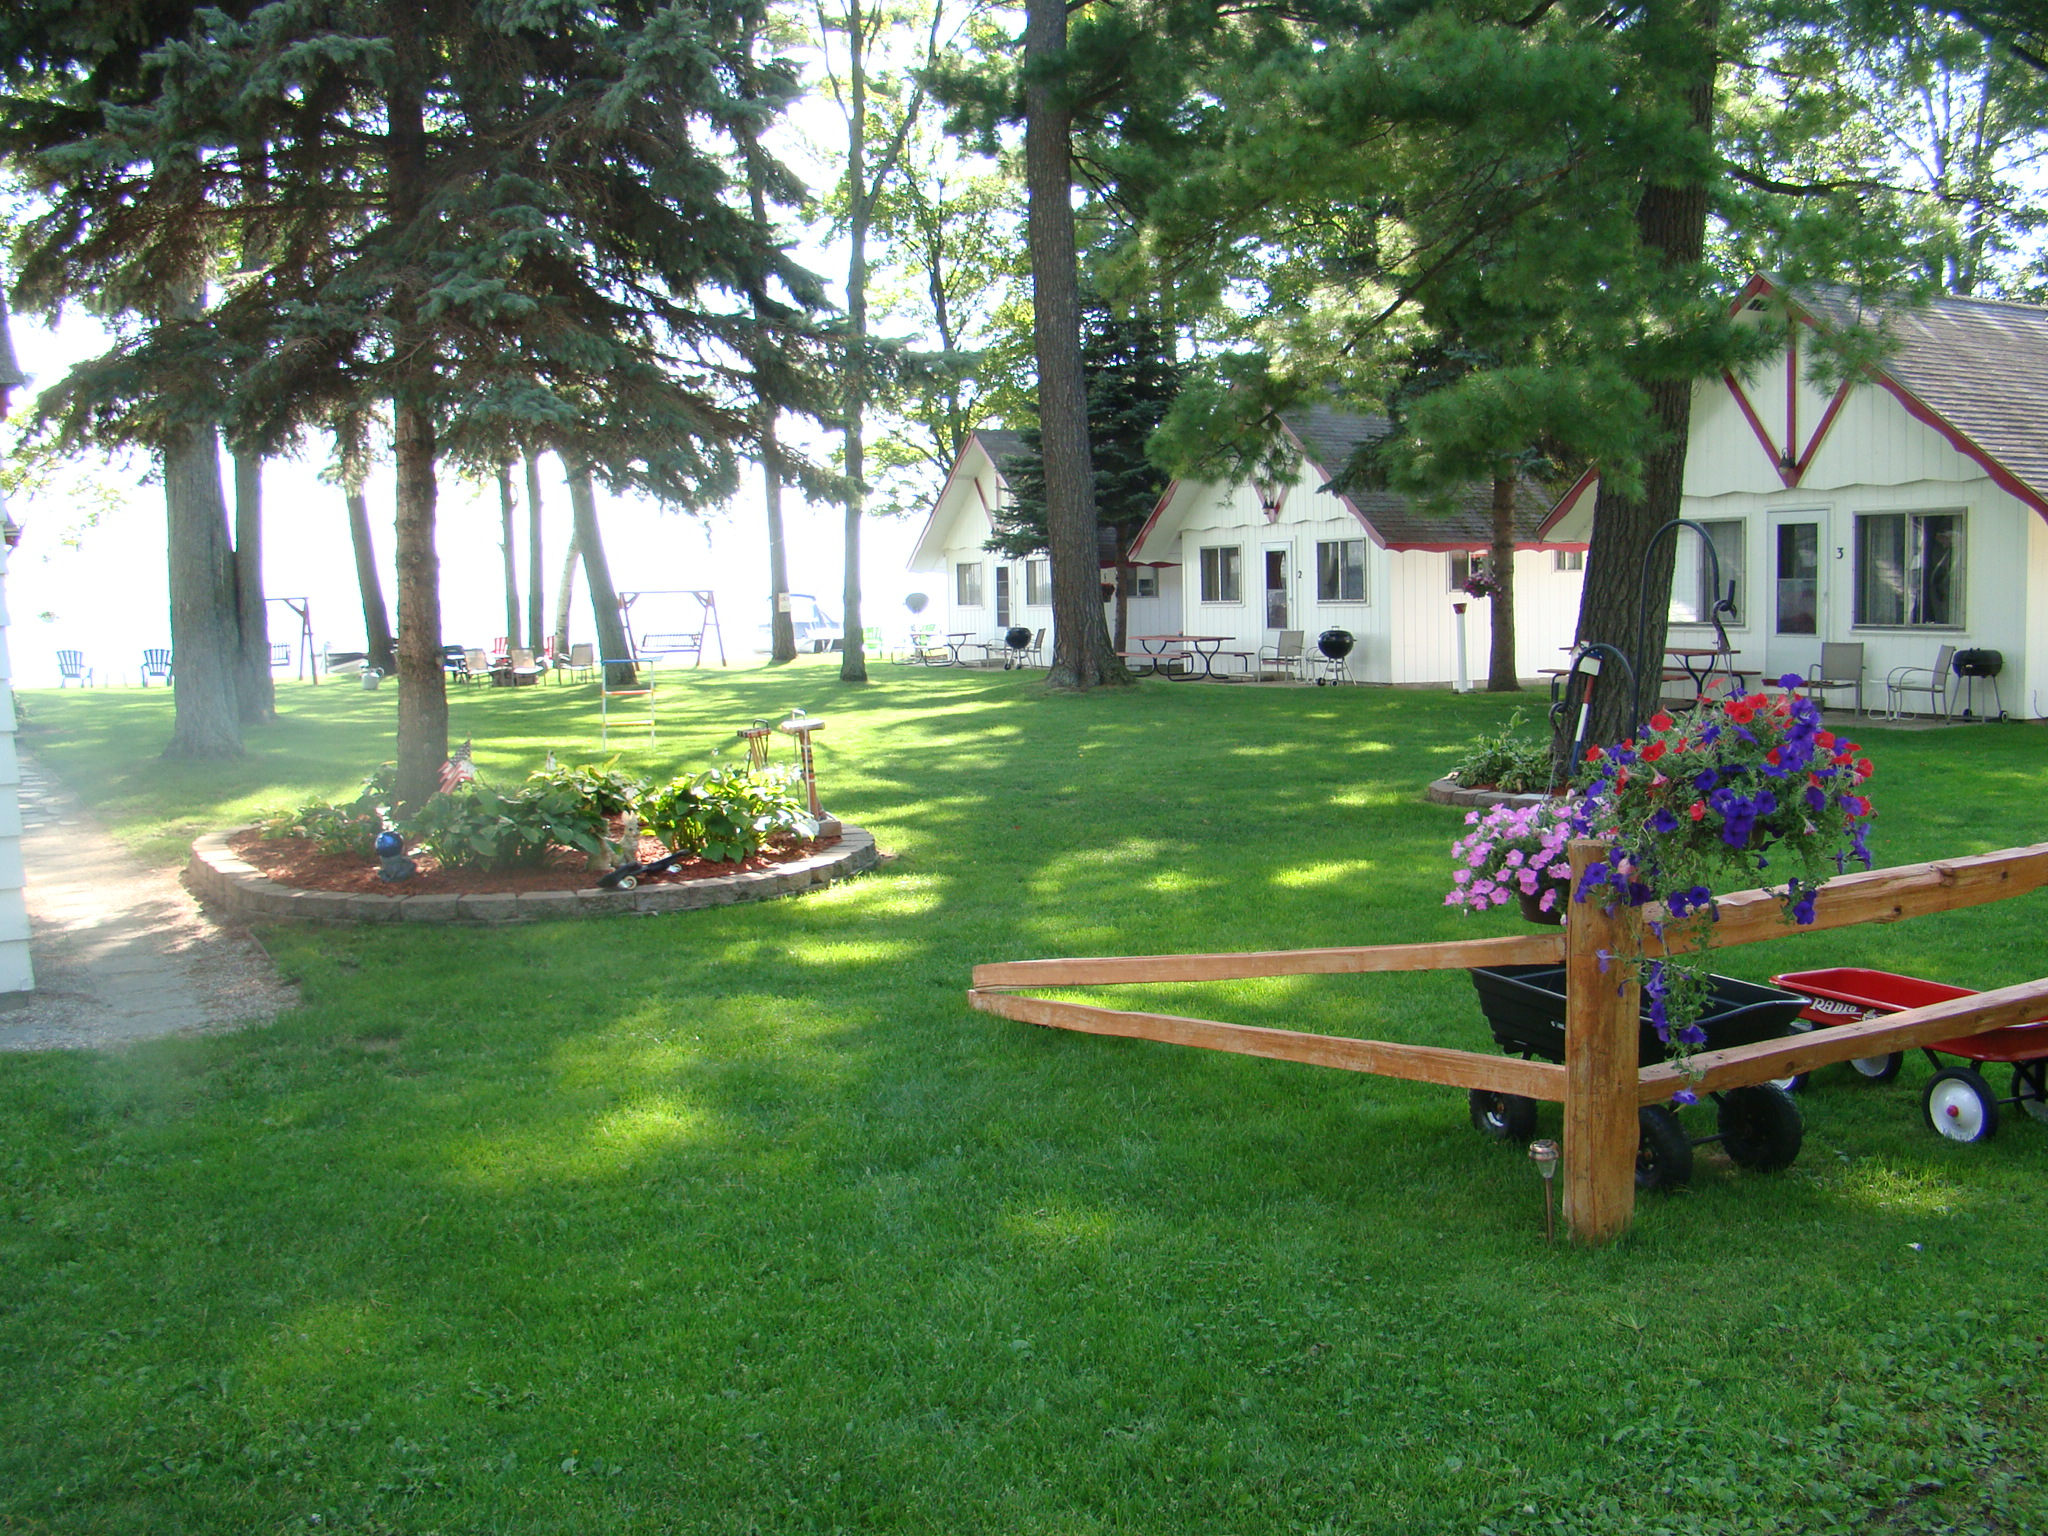 The Crest Resort on the North Shore of Houghton Lake